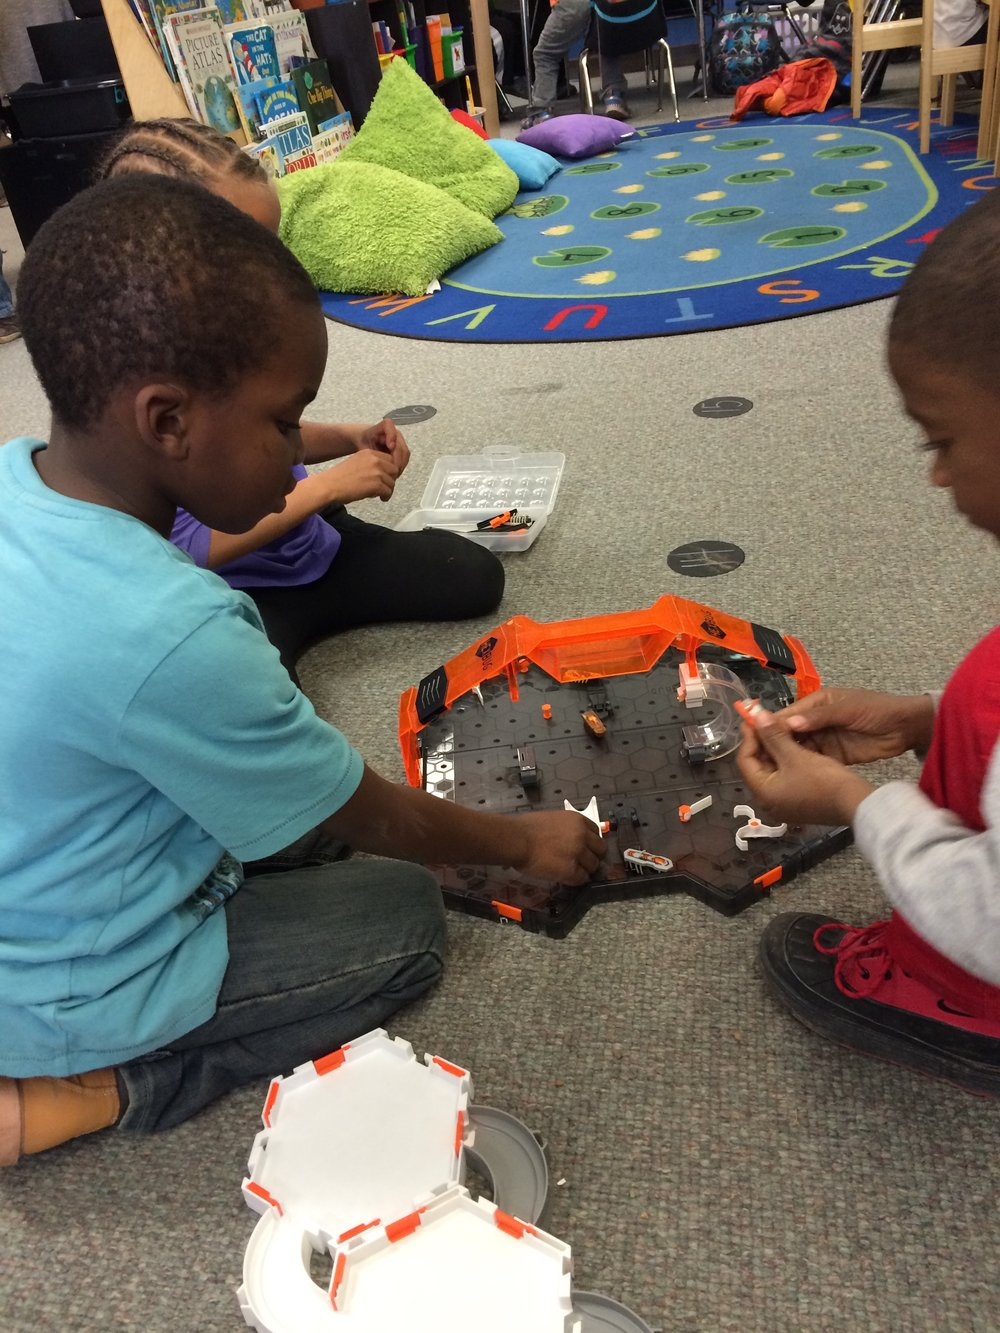 Students from Spring Mill Elementary School play with their HexBug kits.